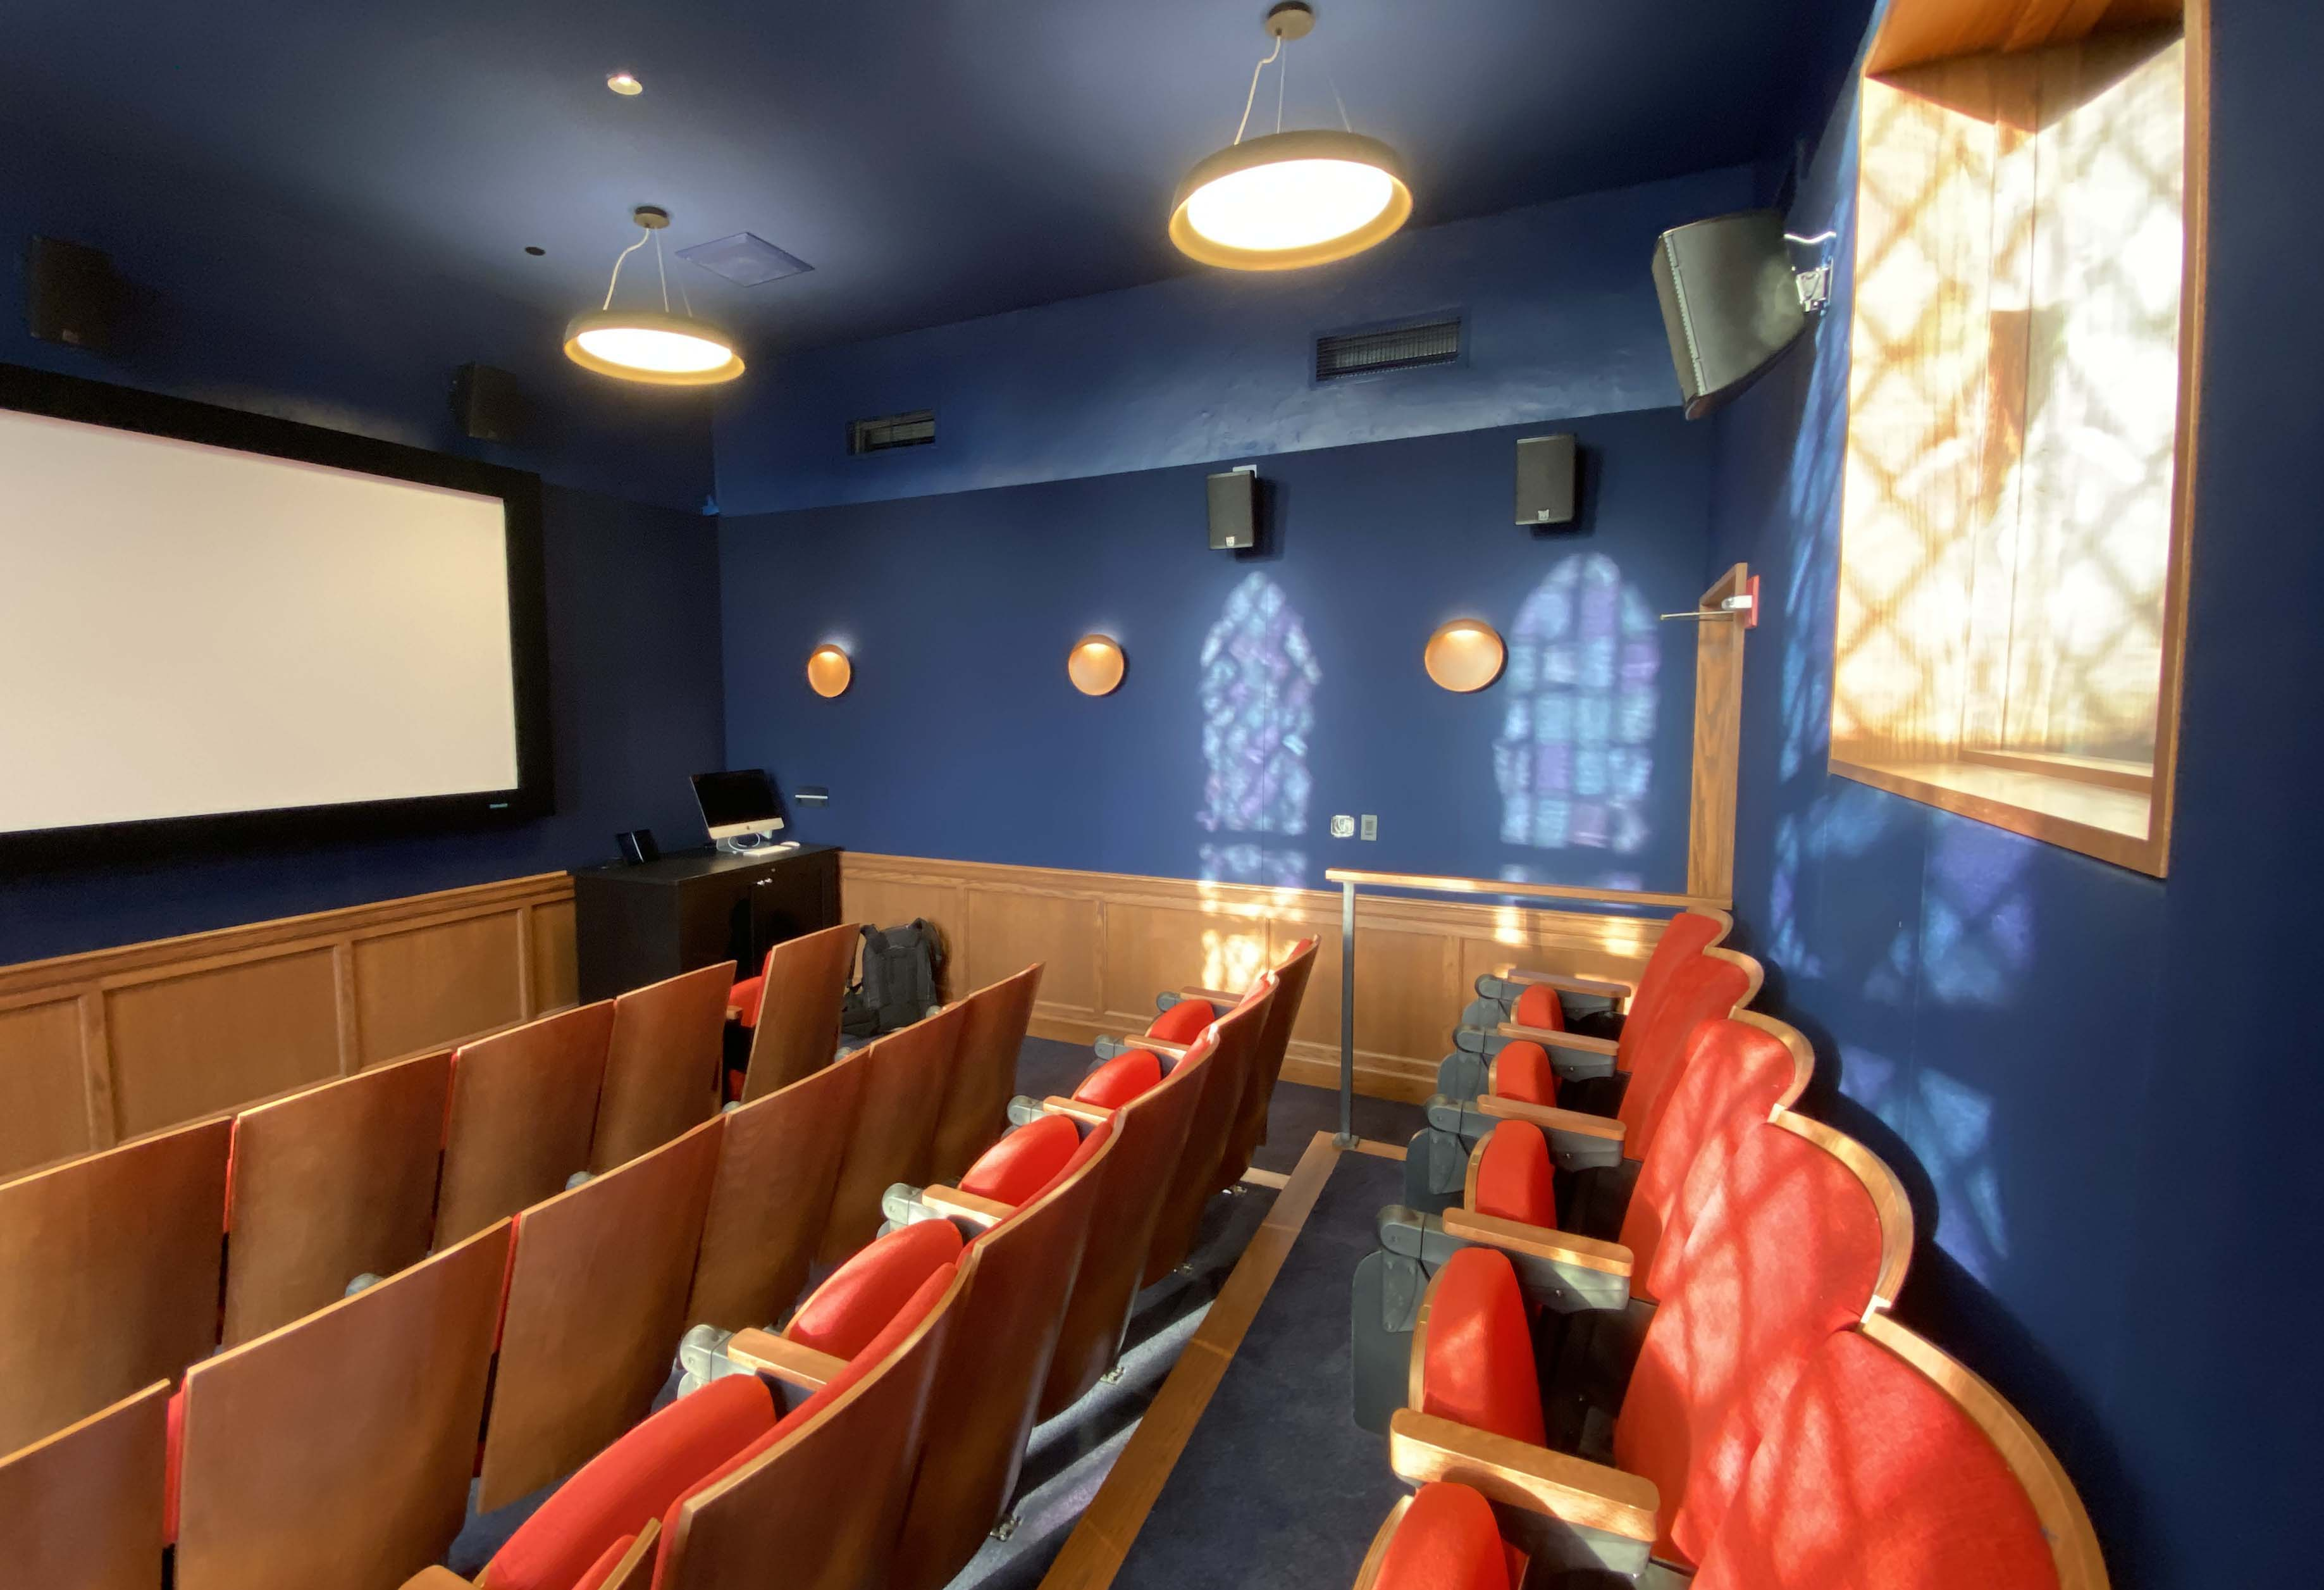 Room with large white screen and rows of red seats